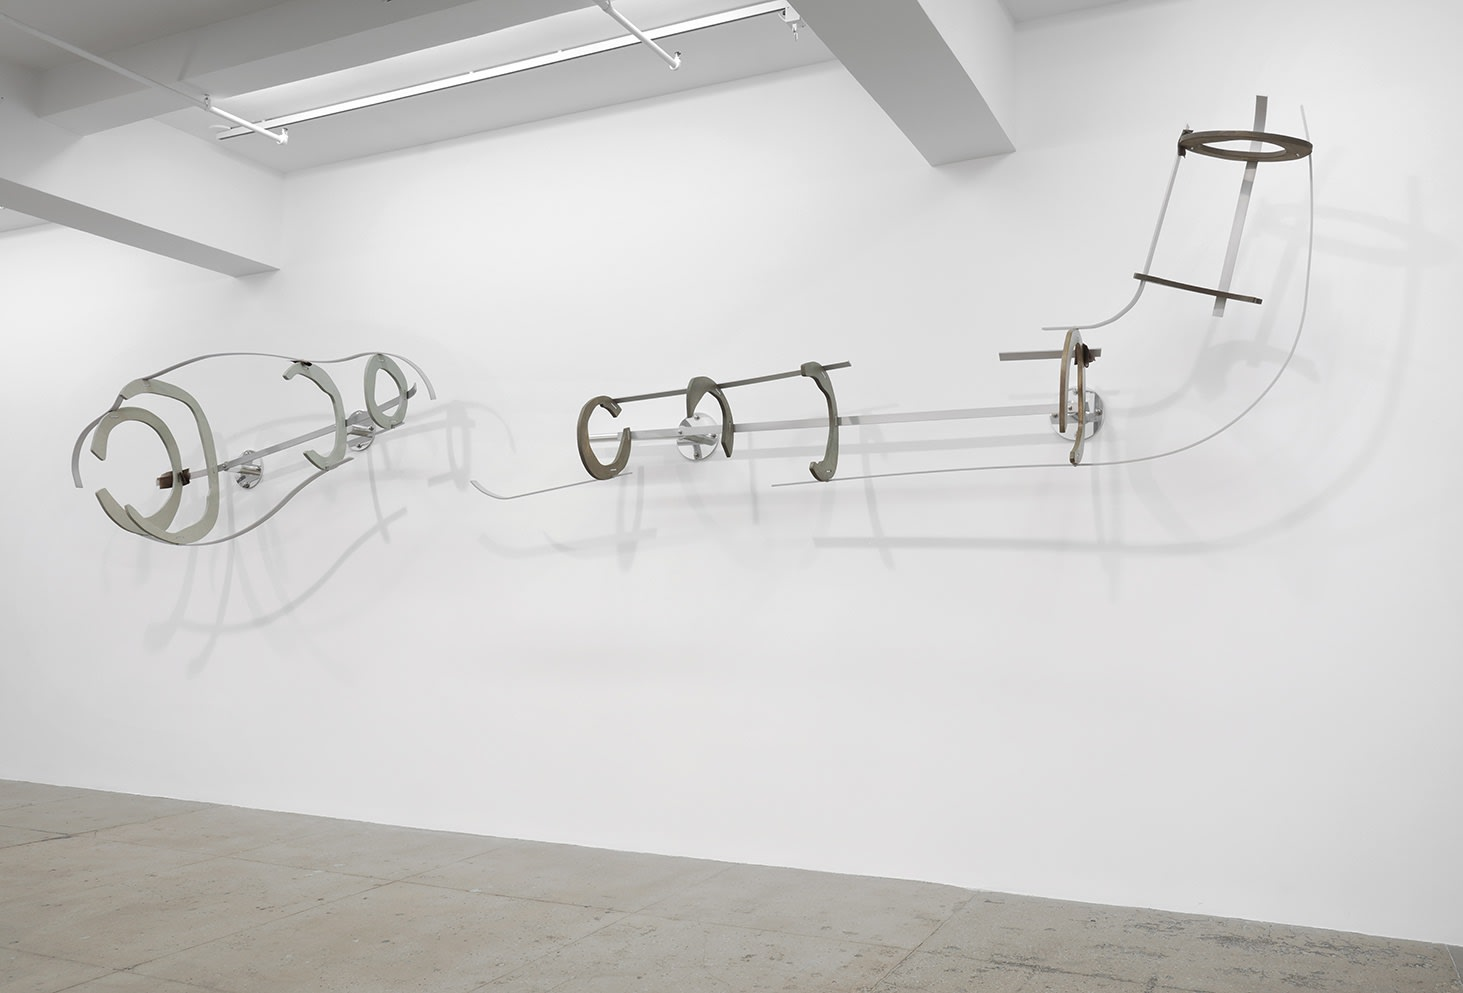 An abstract sculpture is attached to the wall in various pieces connected by thin metal wire.